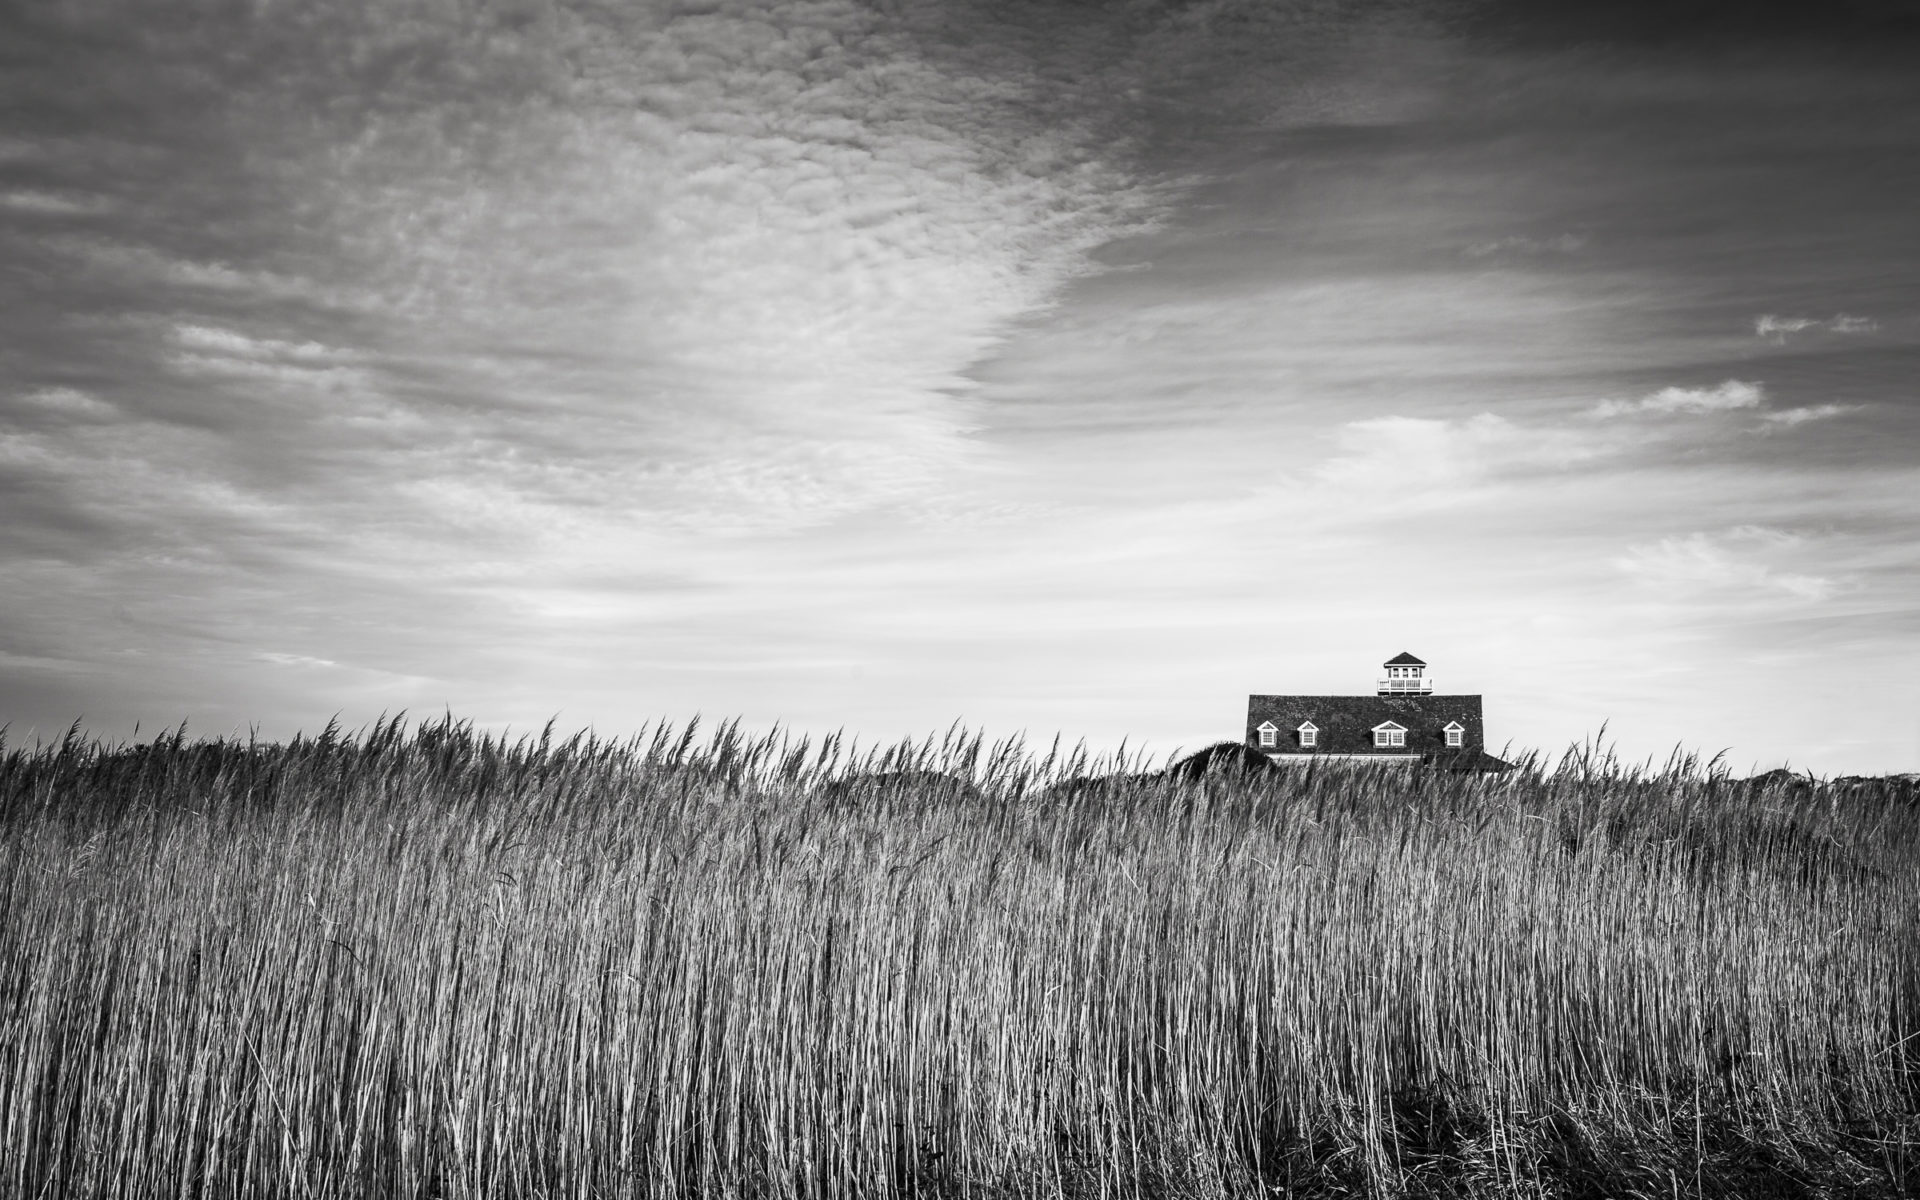 Oregon Inlet Life Saving Station in the Outer Banks